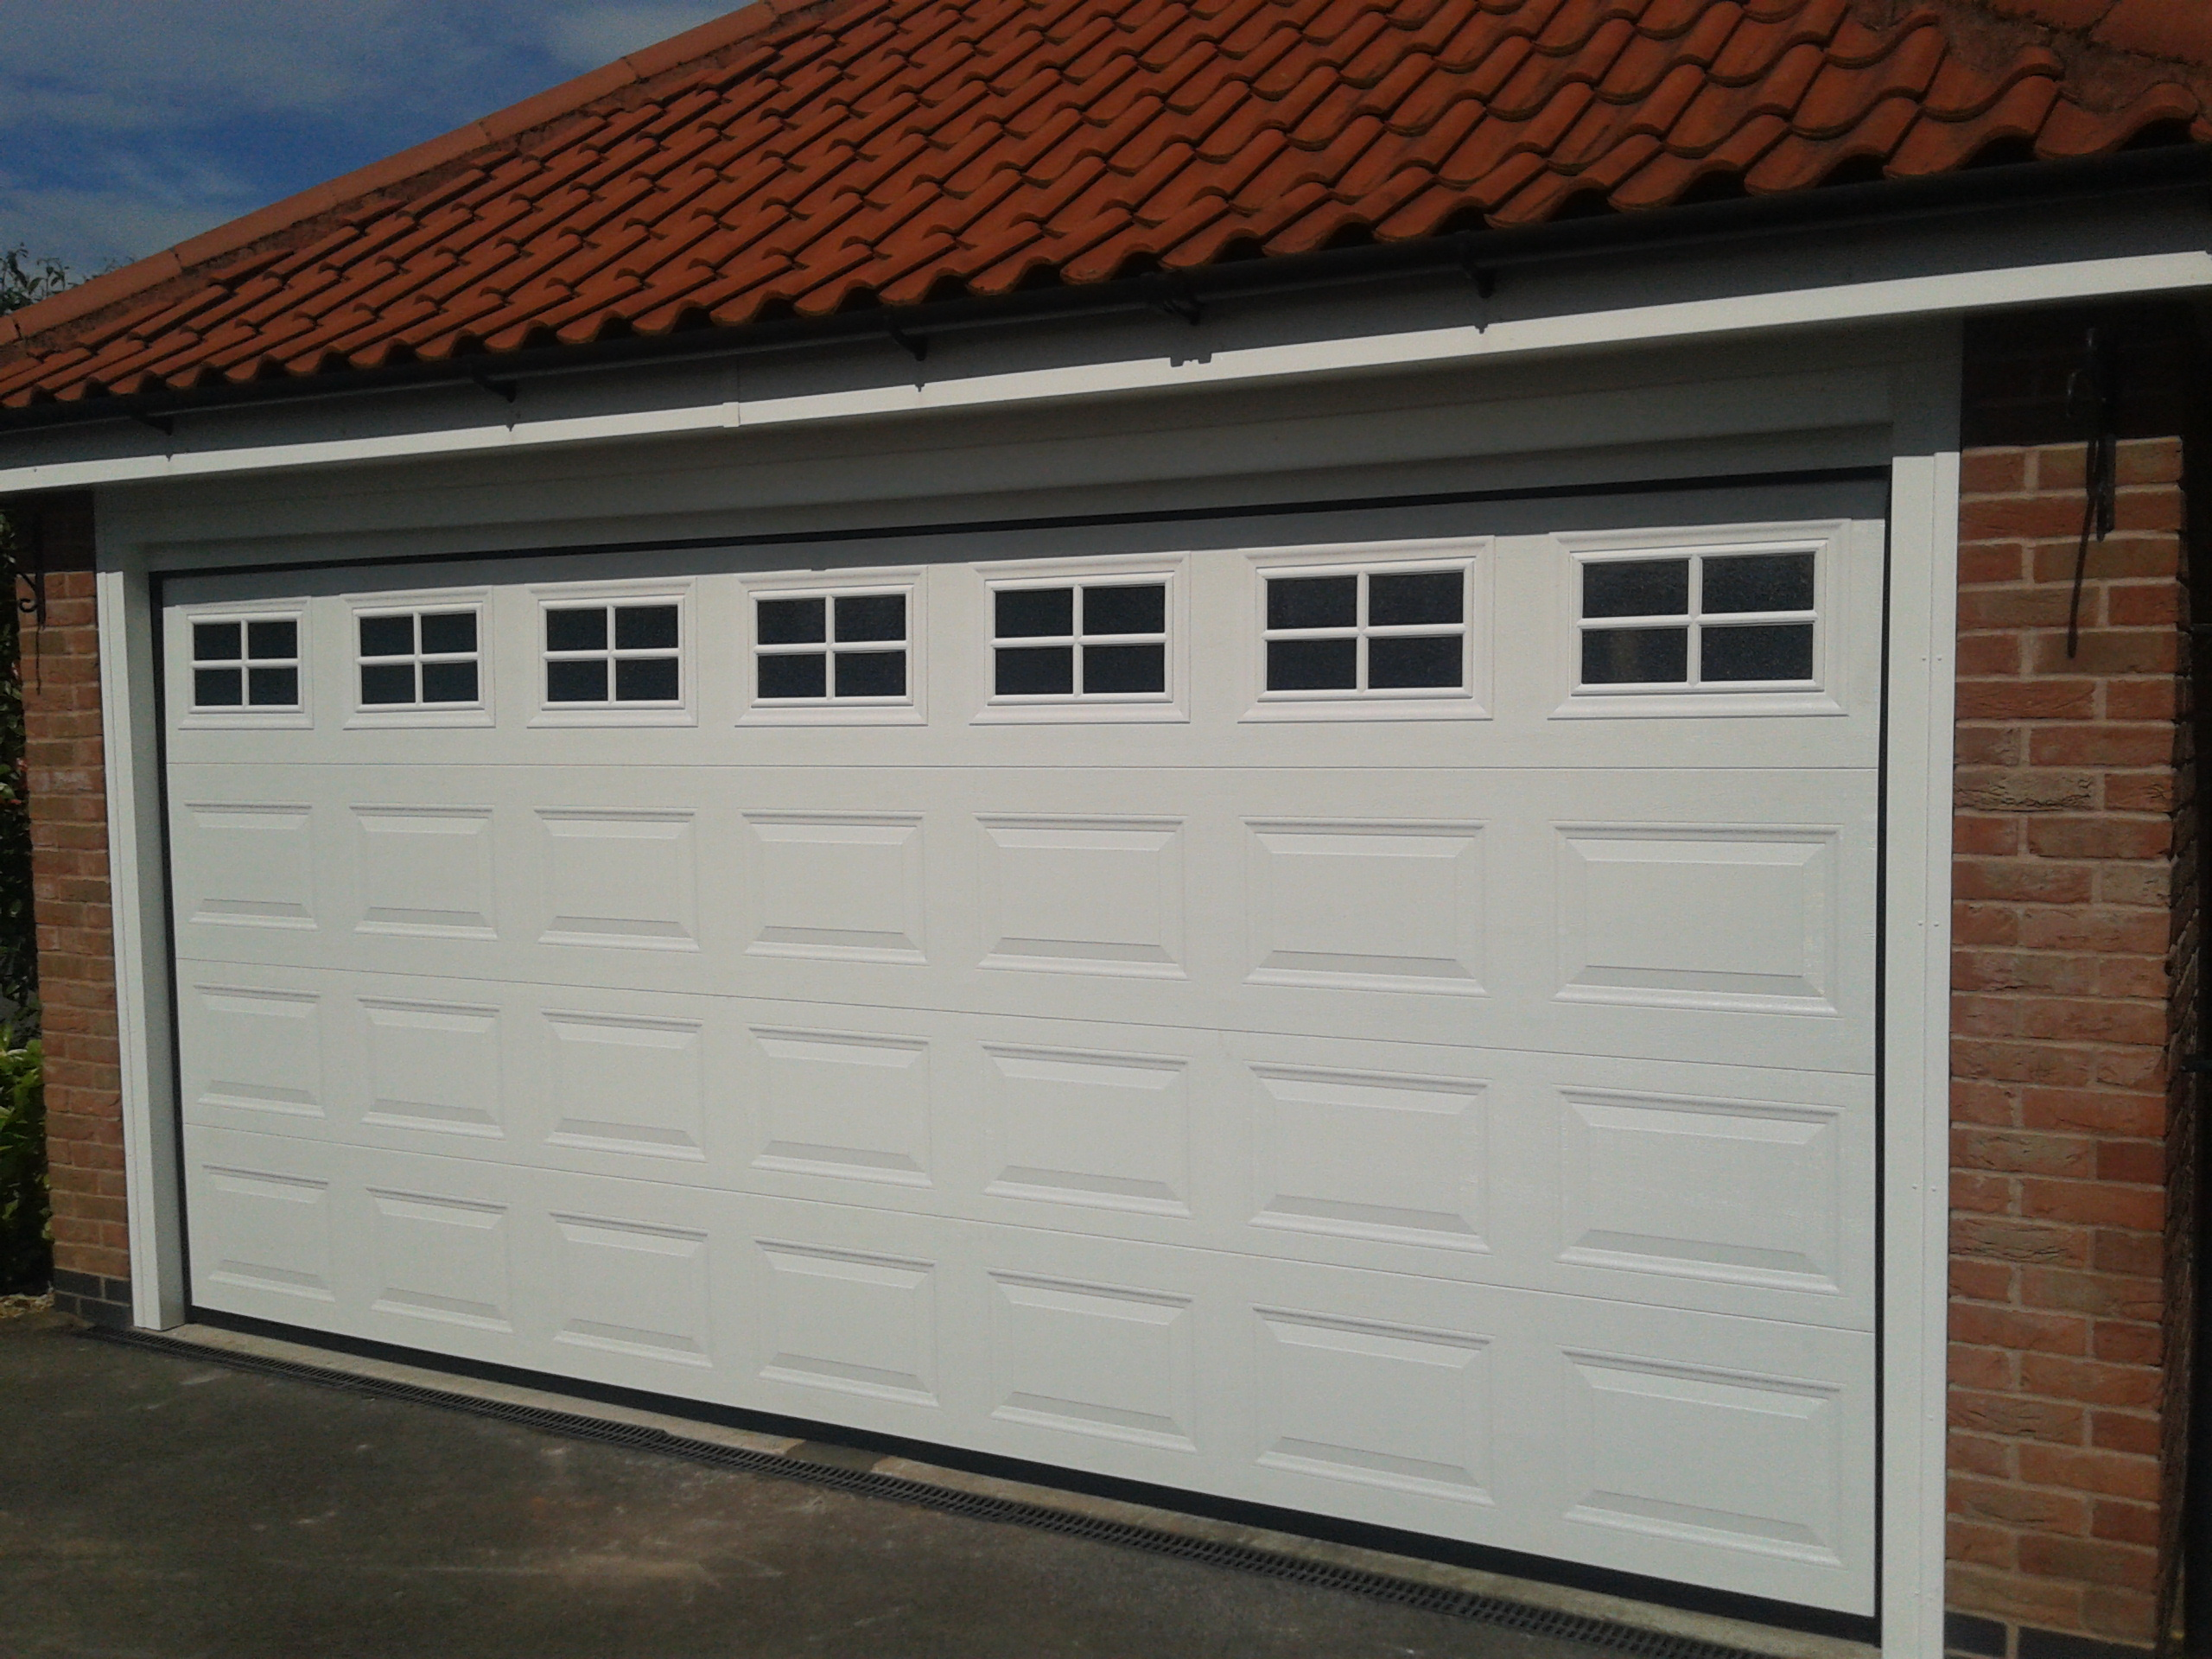 double automatic garage door garage door company grantham. Black Bedroom Furniture Sets. Home Design Ideas